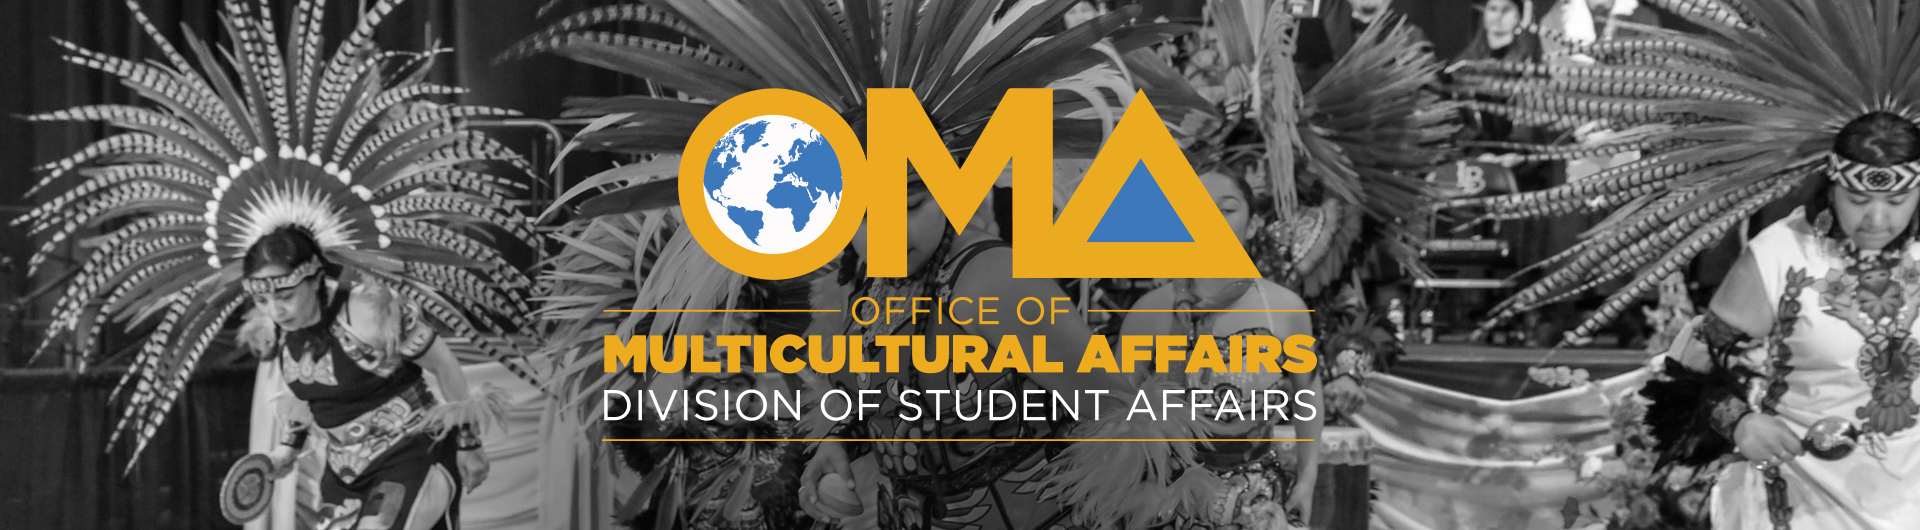 Stay Connected with OMA, Office of Multicultural Affairs